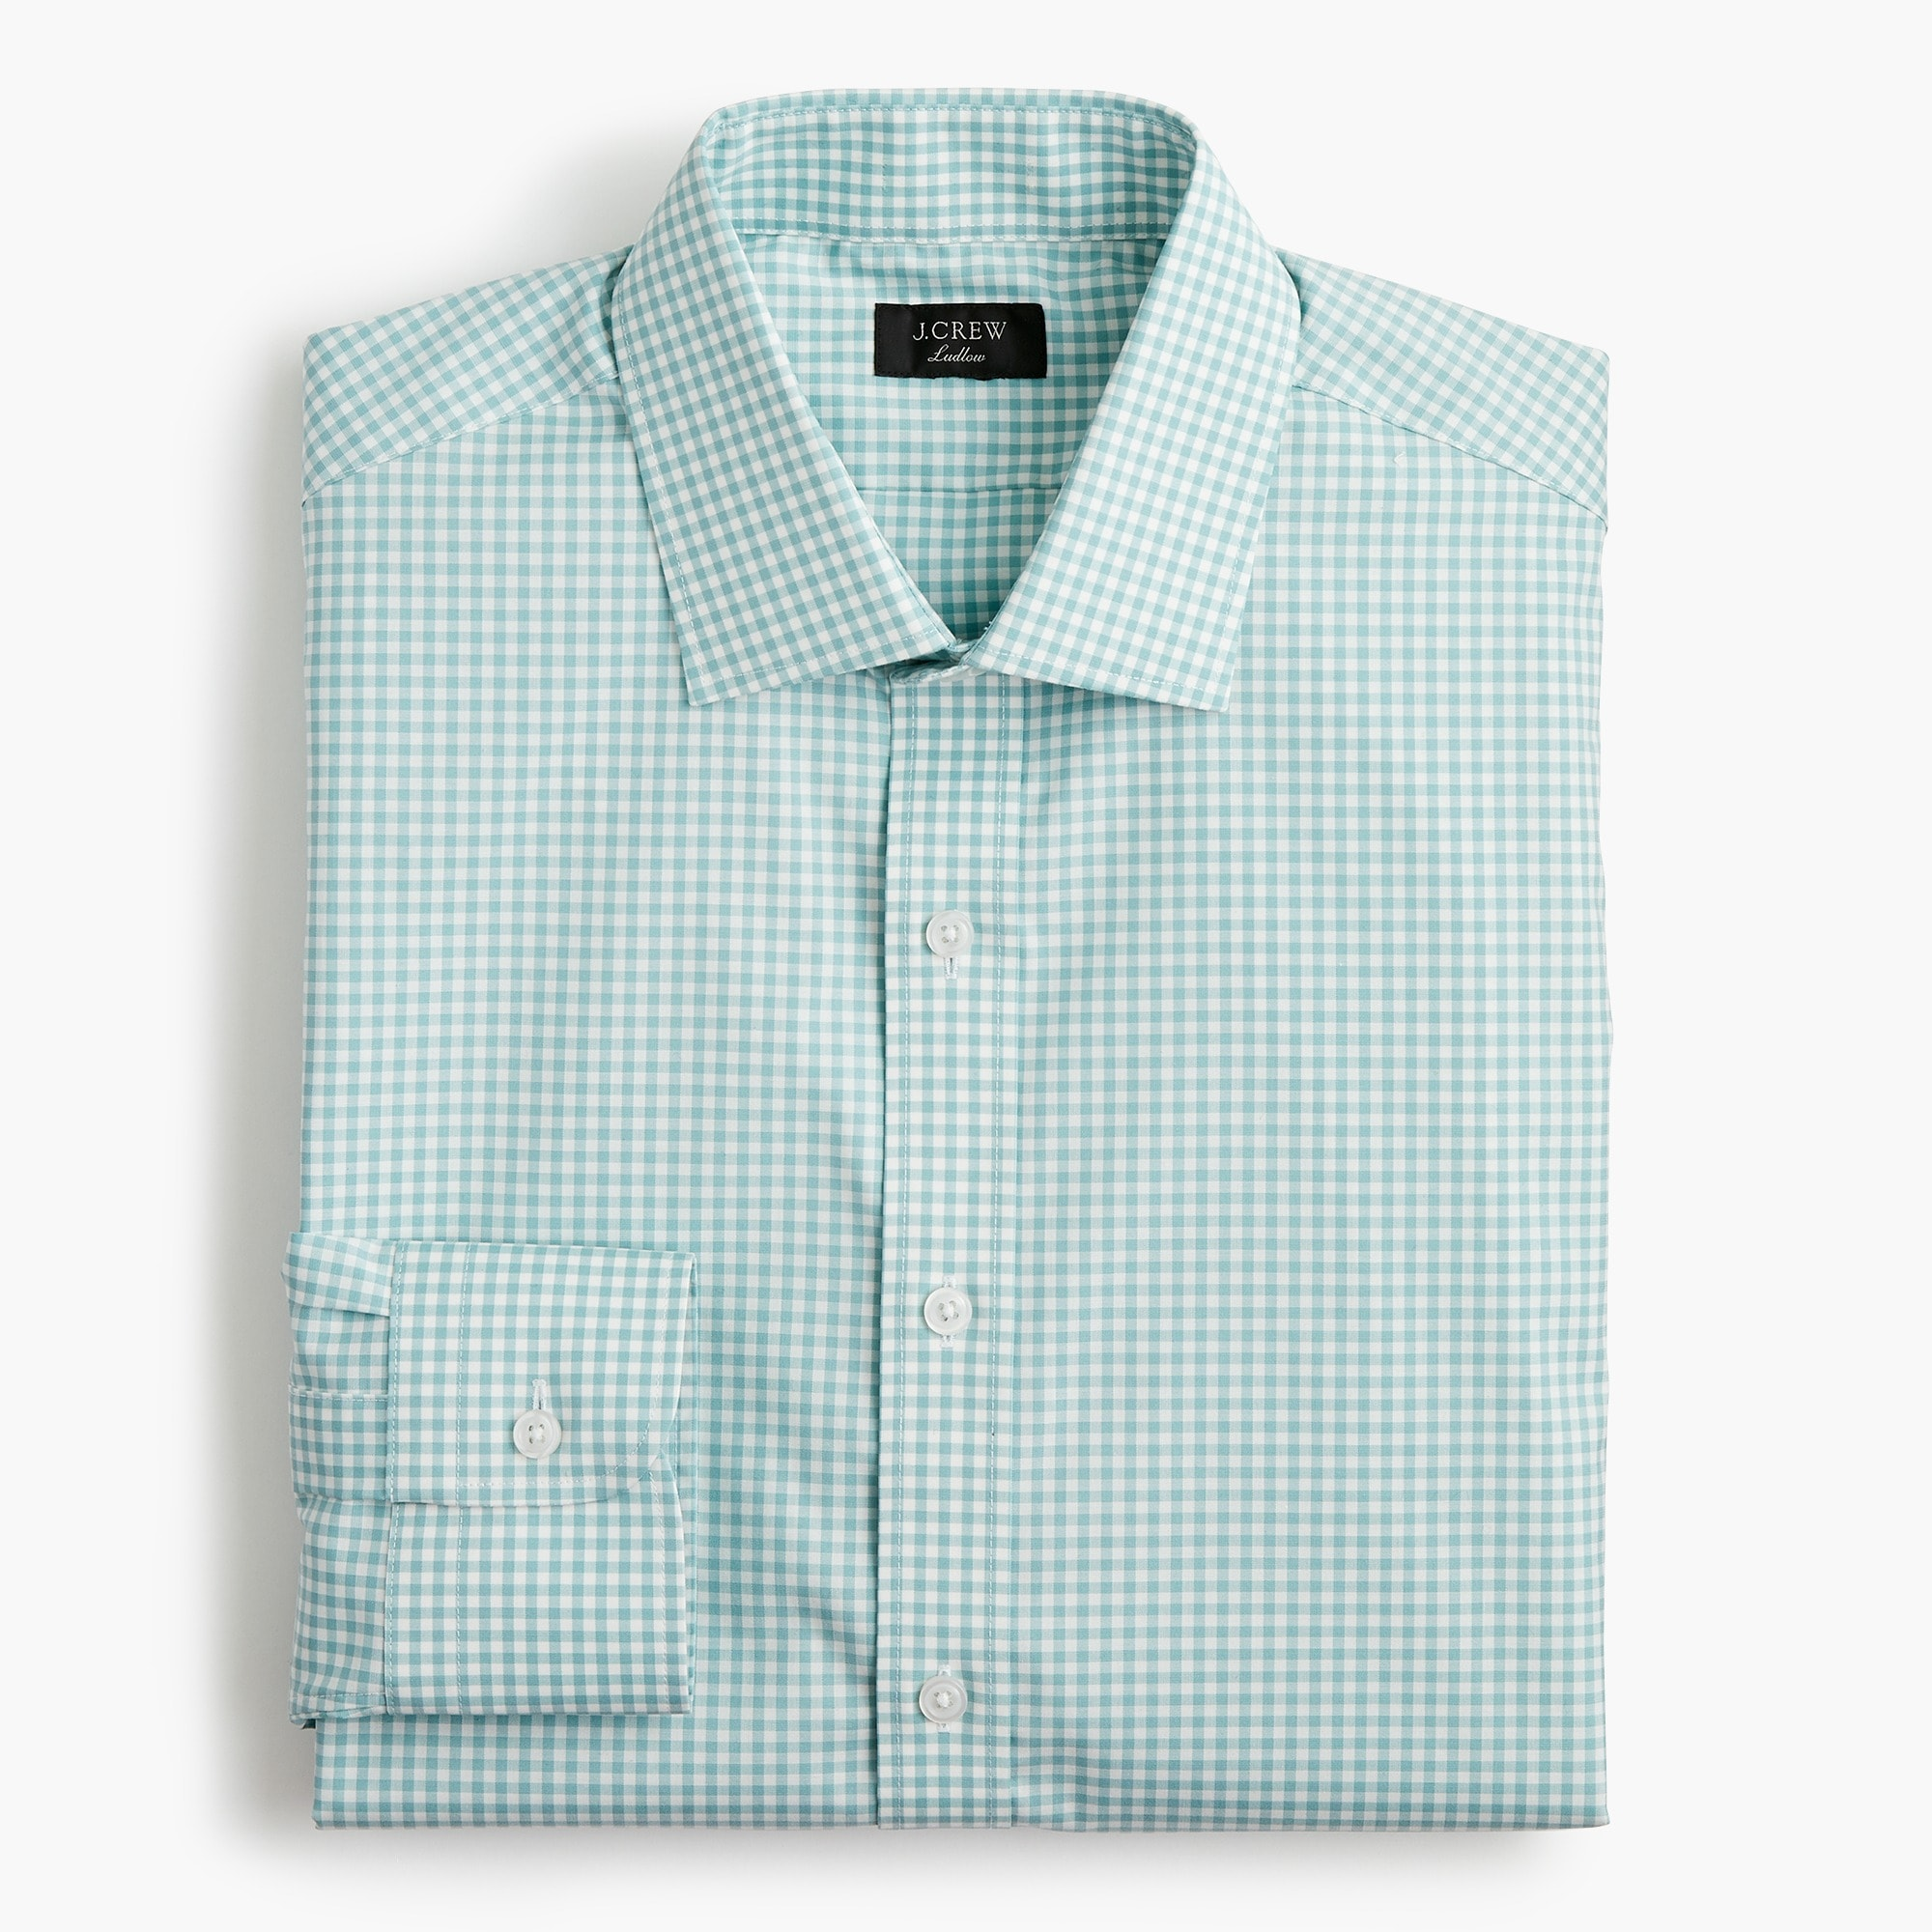 Ludlow Slim-fit stretch two-ply easy-care cotton dress shirt in aqua gingham